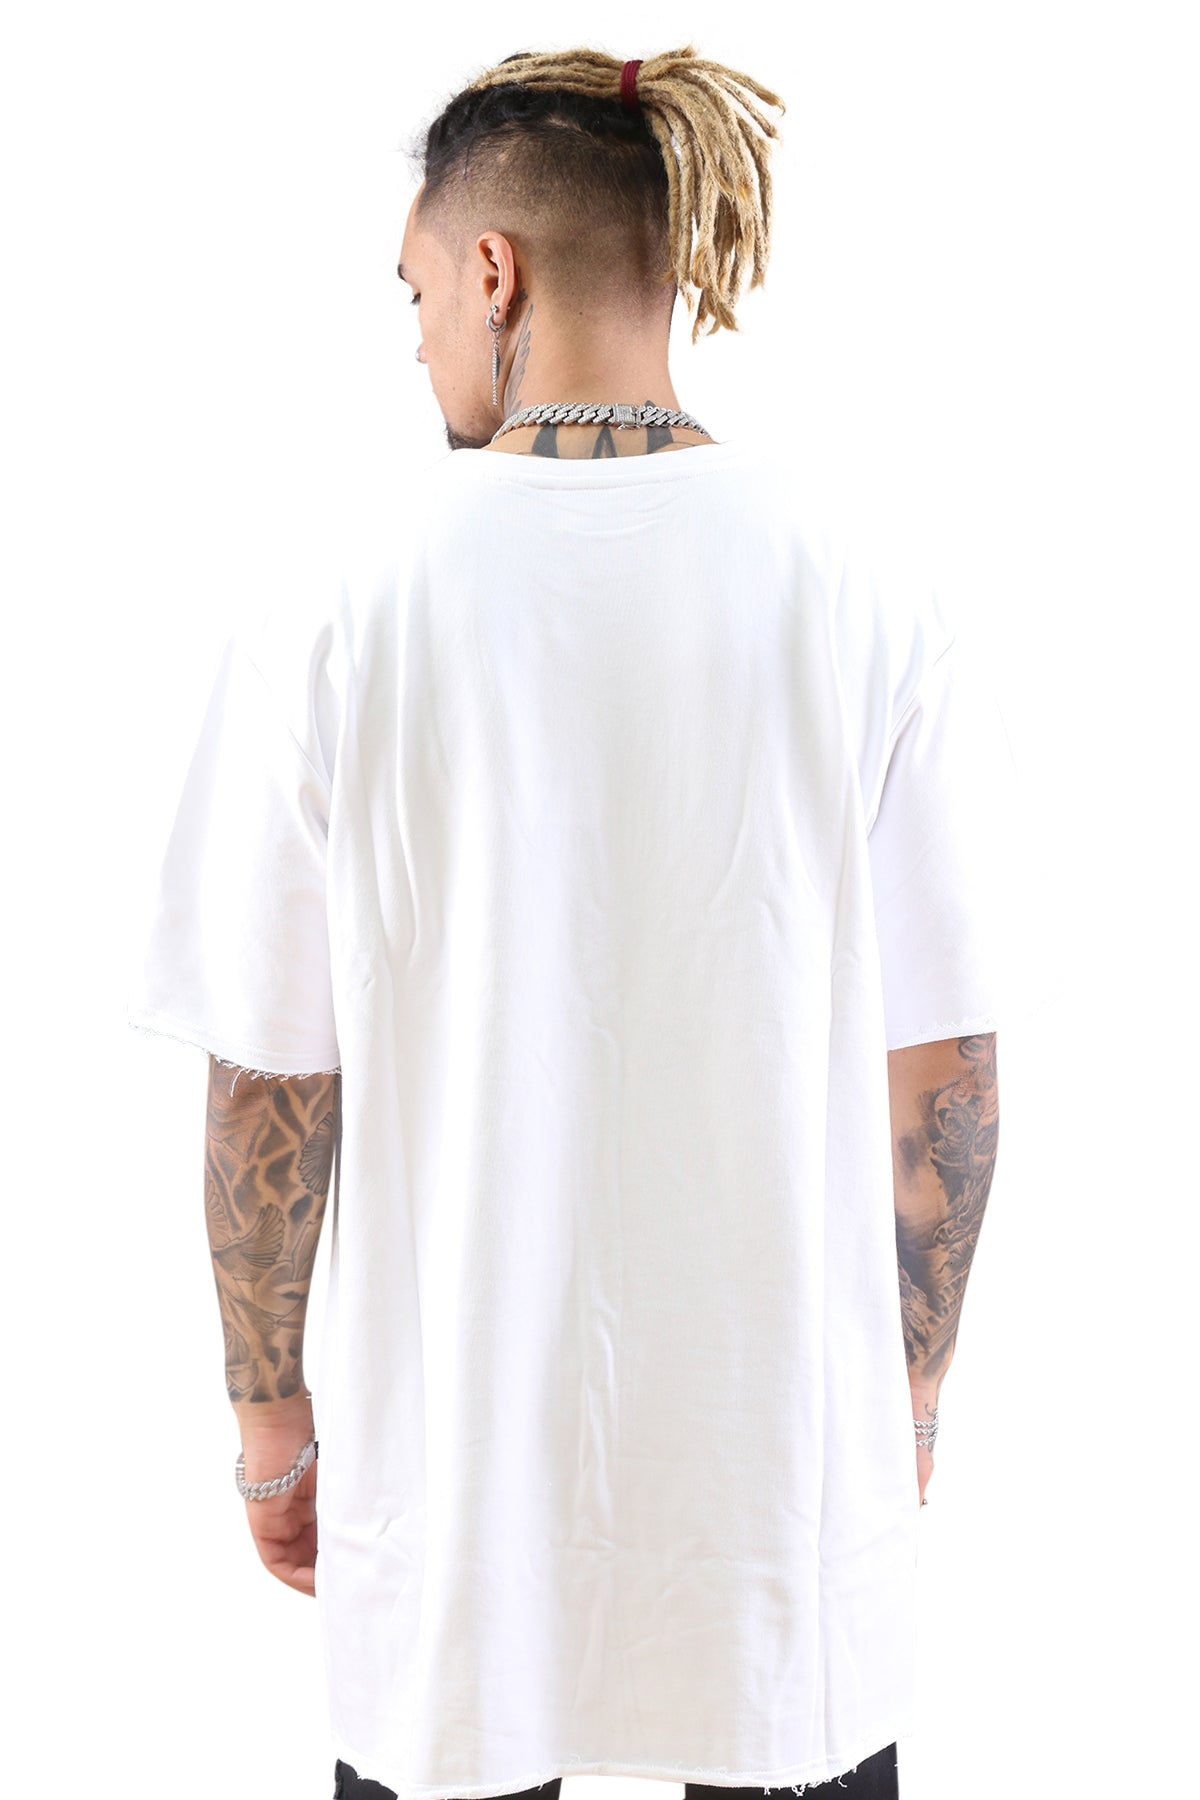 Federation Street Top Backwards White Back